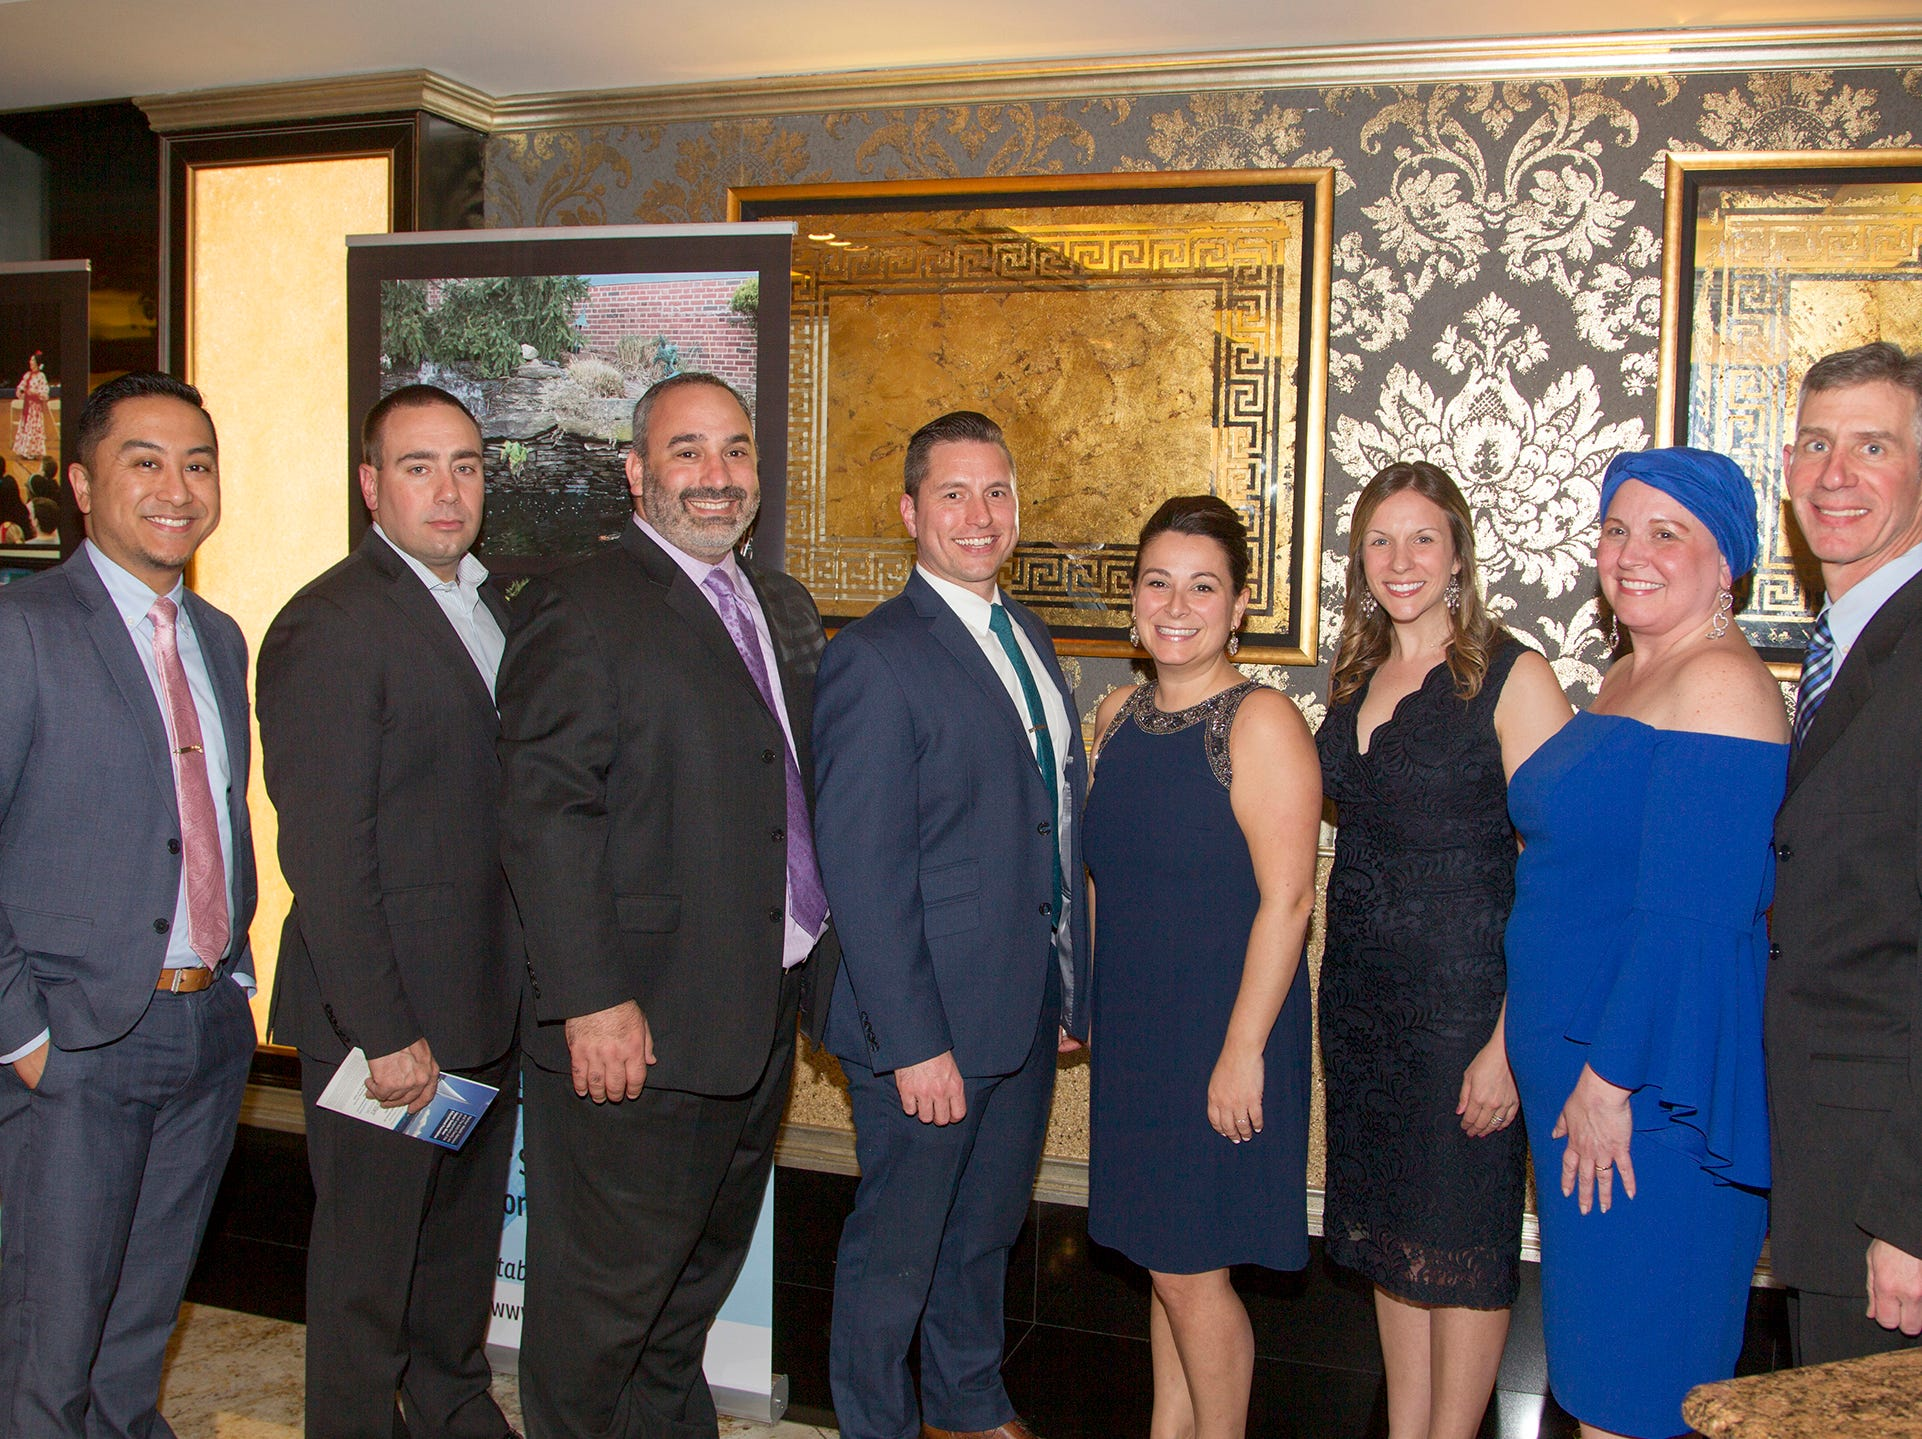 Mike Padilla, Mike Desocio, Dave Kaplan, Jim Dunn, Amy D'Ambola, Devin Severs, Elizabeth Ullrich, Dan Cazes. Upper Saddle River Education Foundation hosted its Town Night Out Gala at Seasons in Washington Twp. 04/06/2019